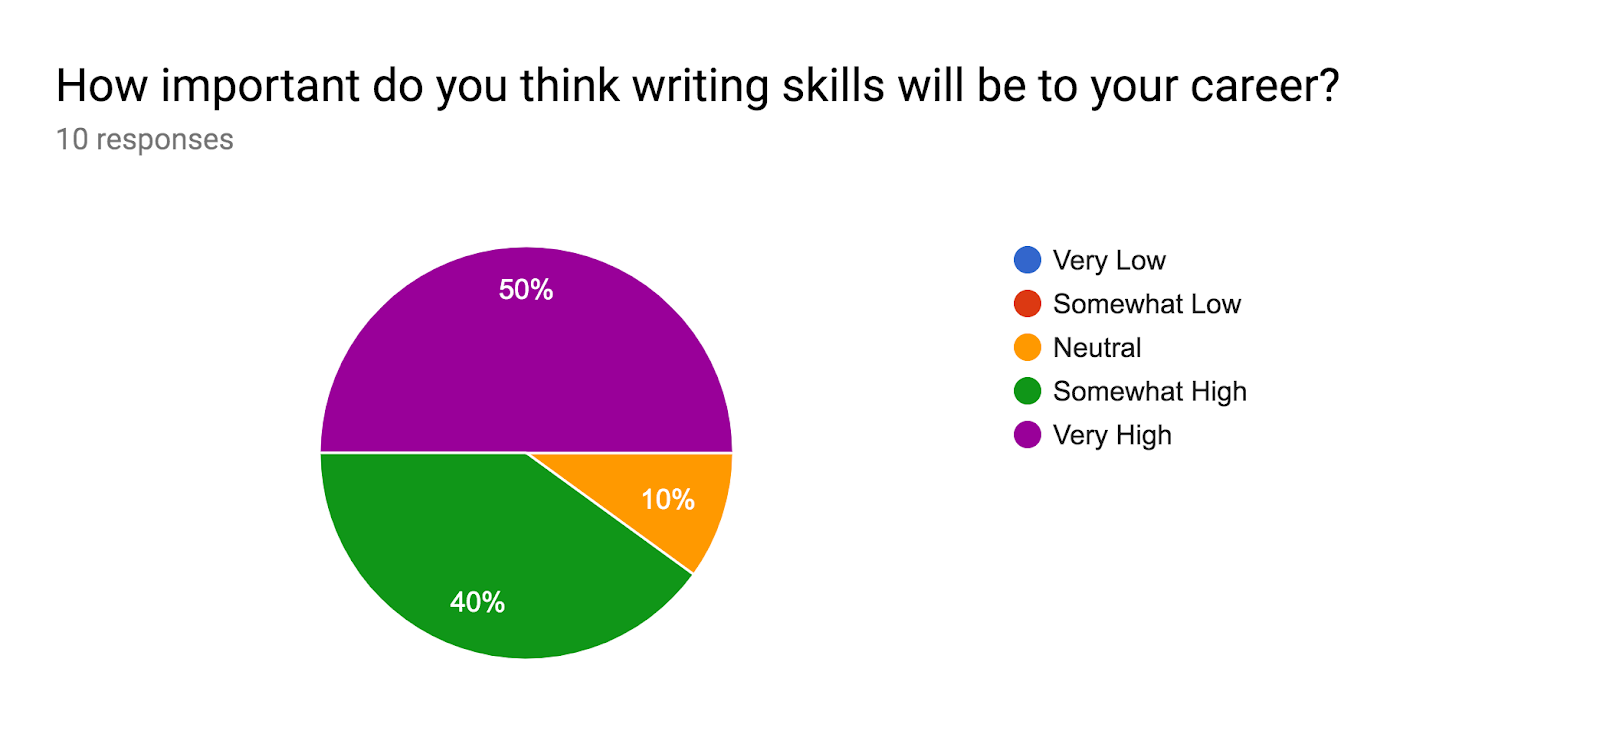 Forms response chart. Question title: How important do you think writing skills will be to your career?. Number of responses: 10 responses.